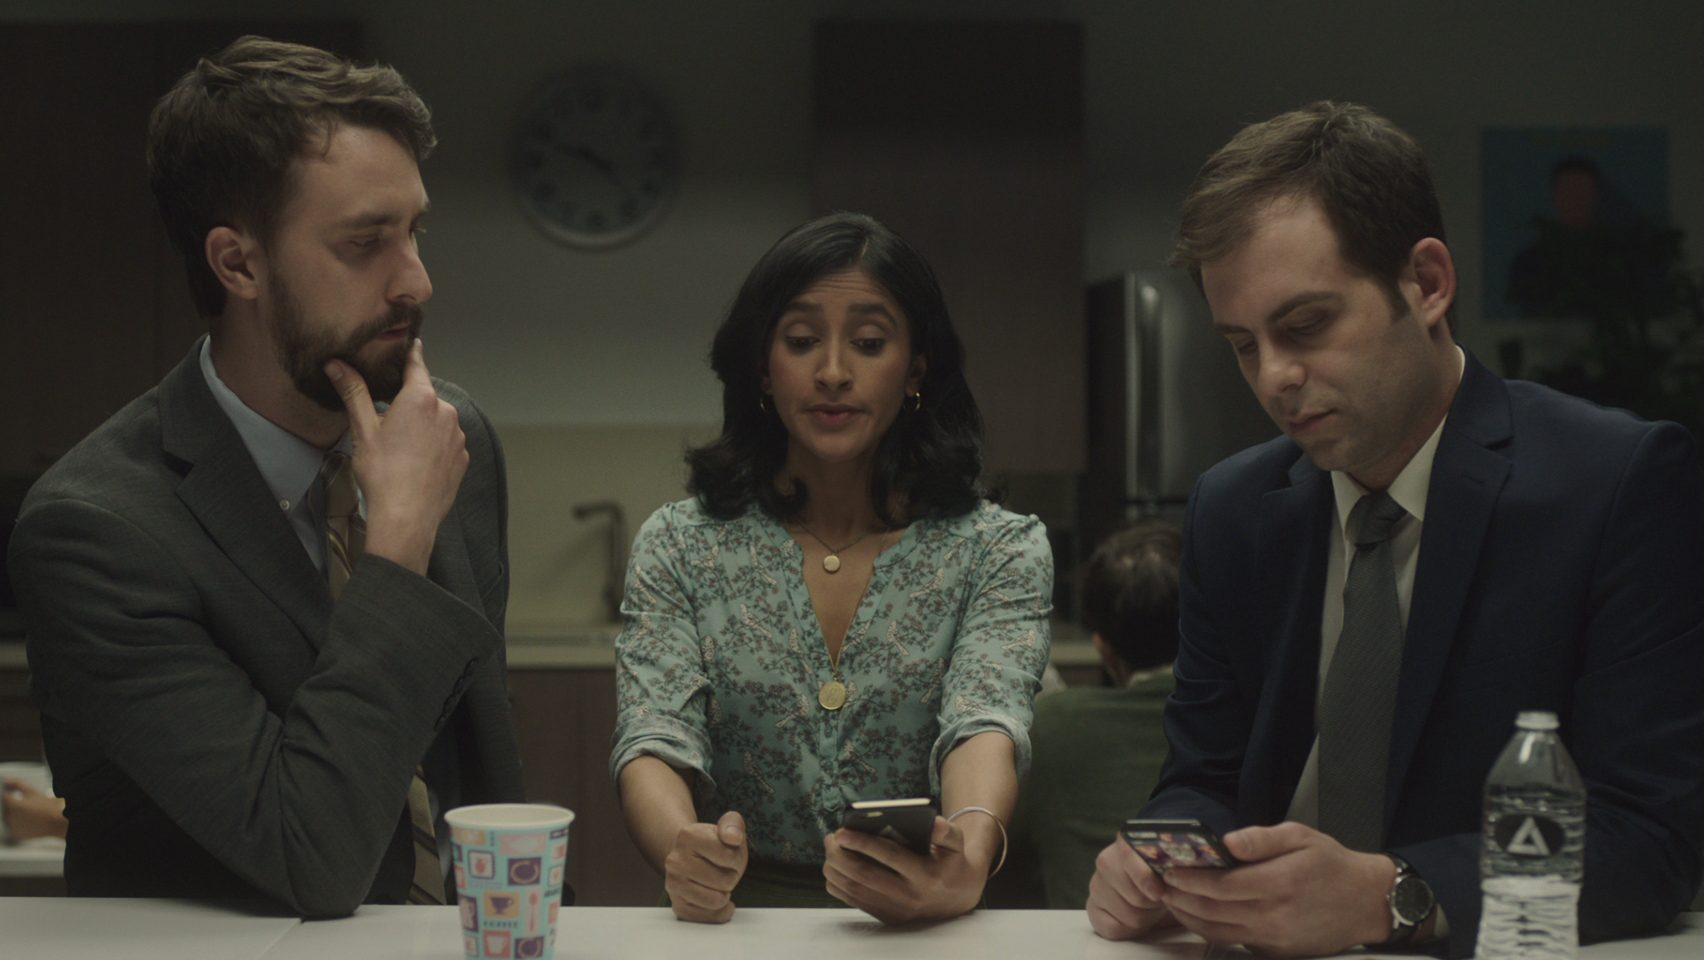 Matt, Grace, and Jake in a scene from corporate